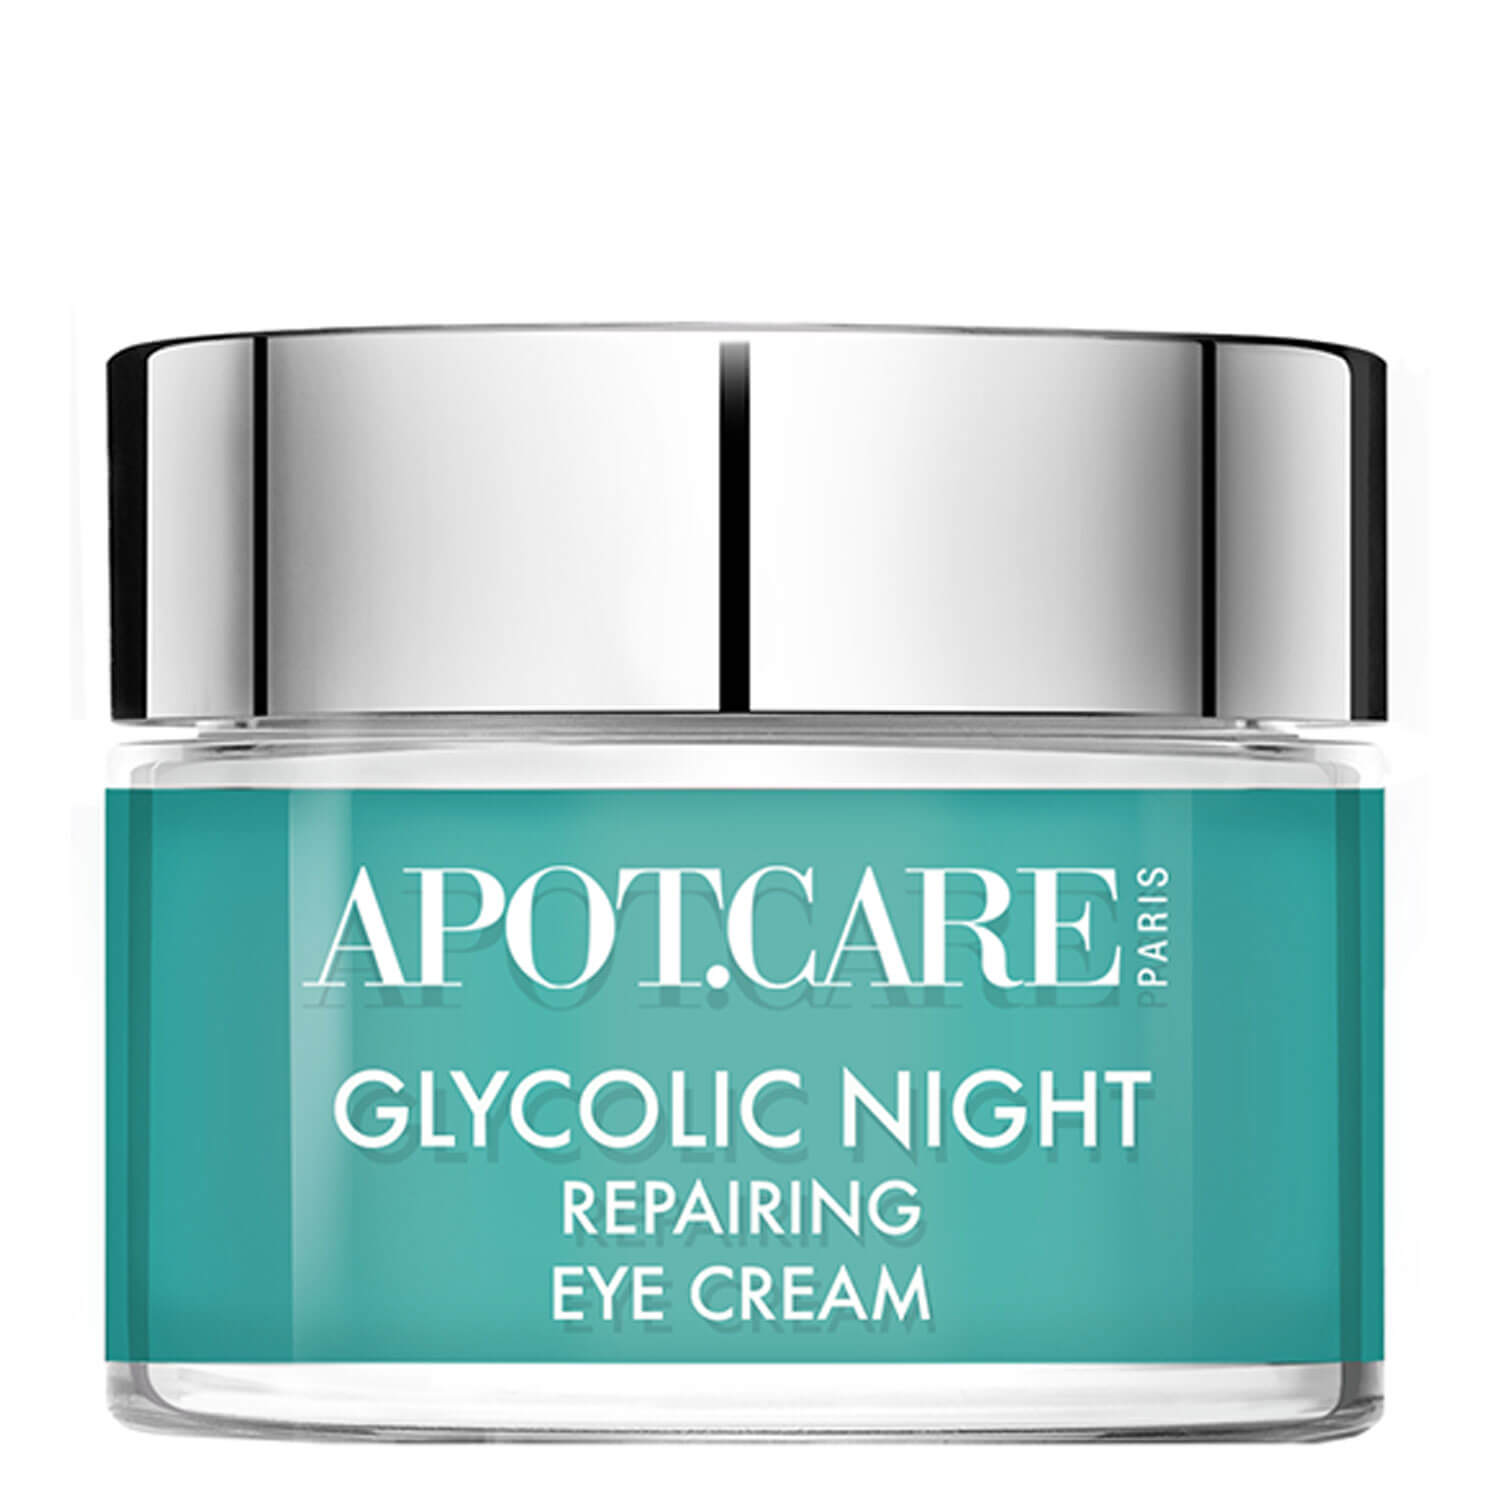 Apot.Care Eyecare - Glycolic Night Reparing Night Eye Cream